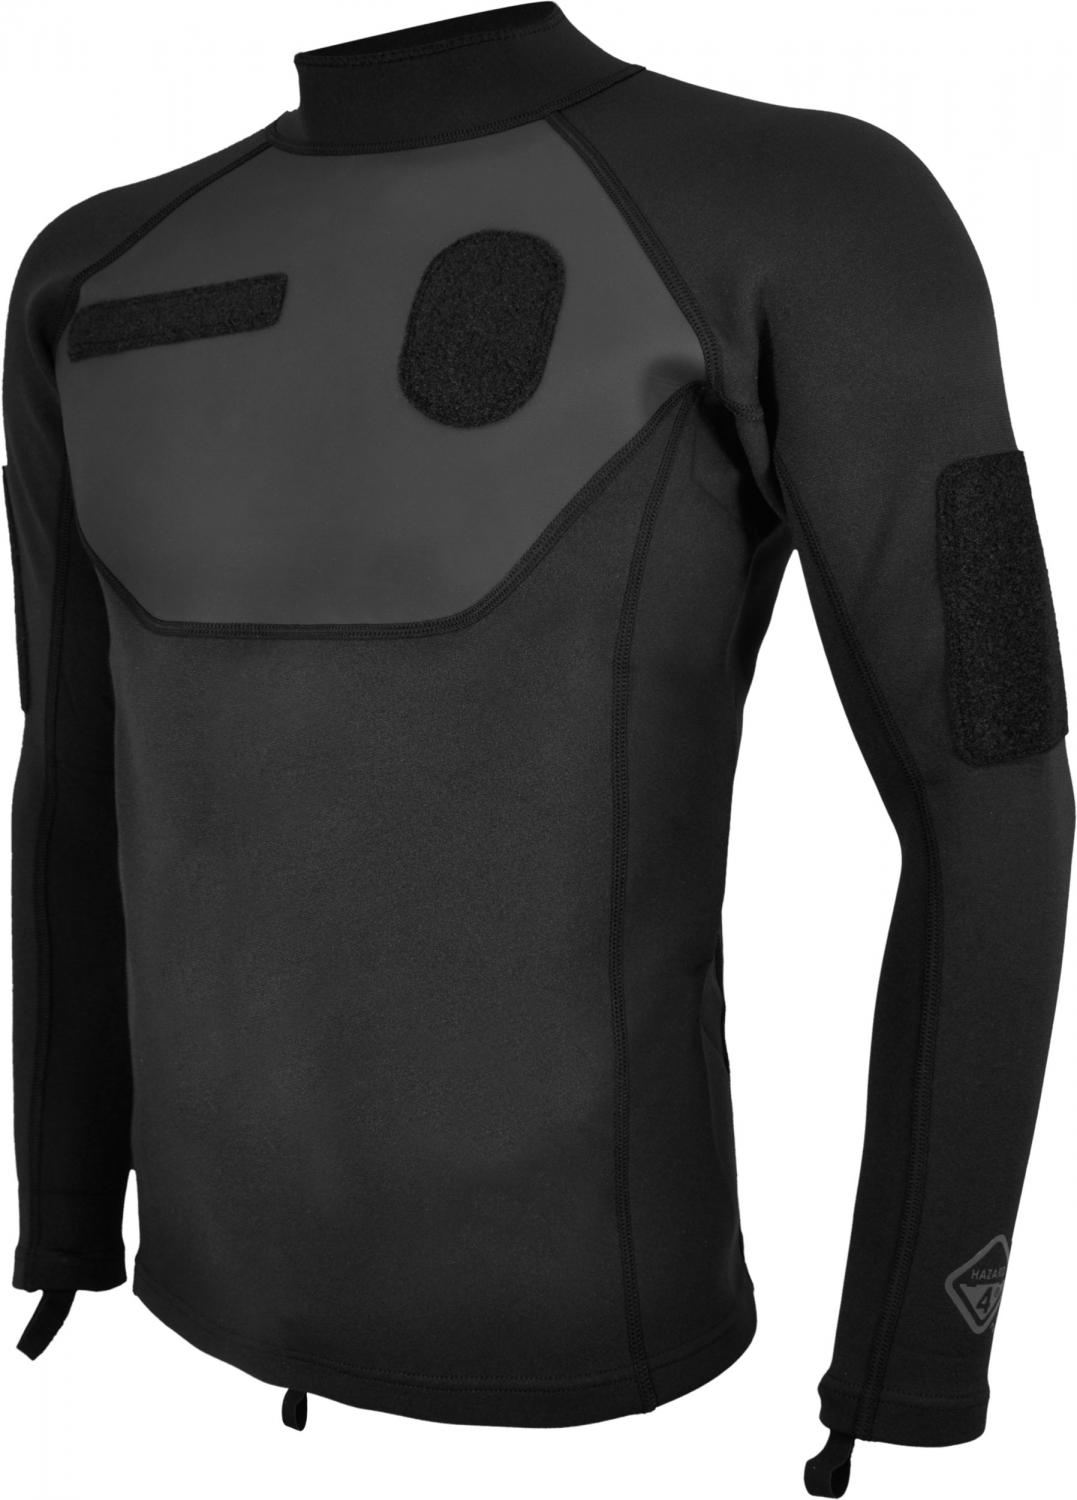 Hazard 4 Skin Diver ID Neoprene Shirt, Small